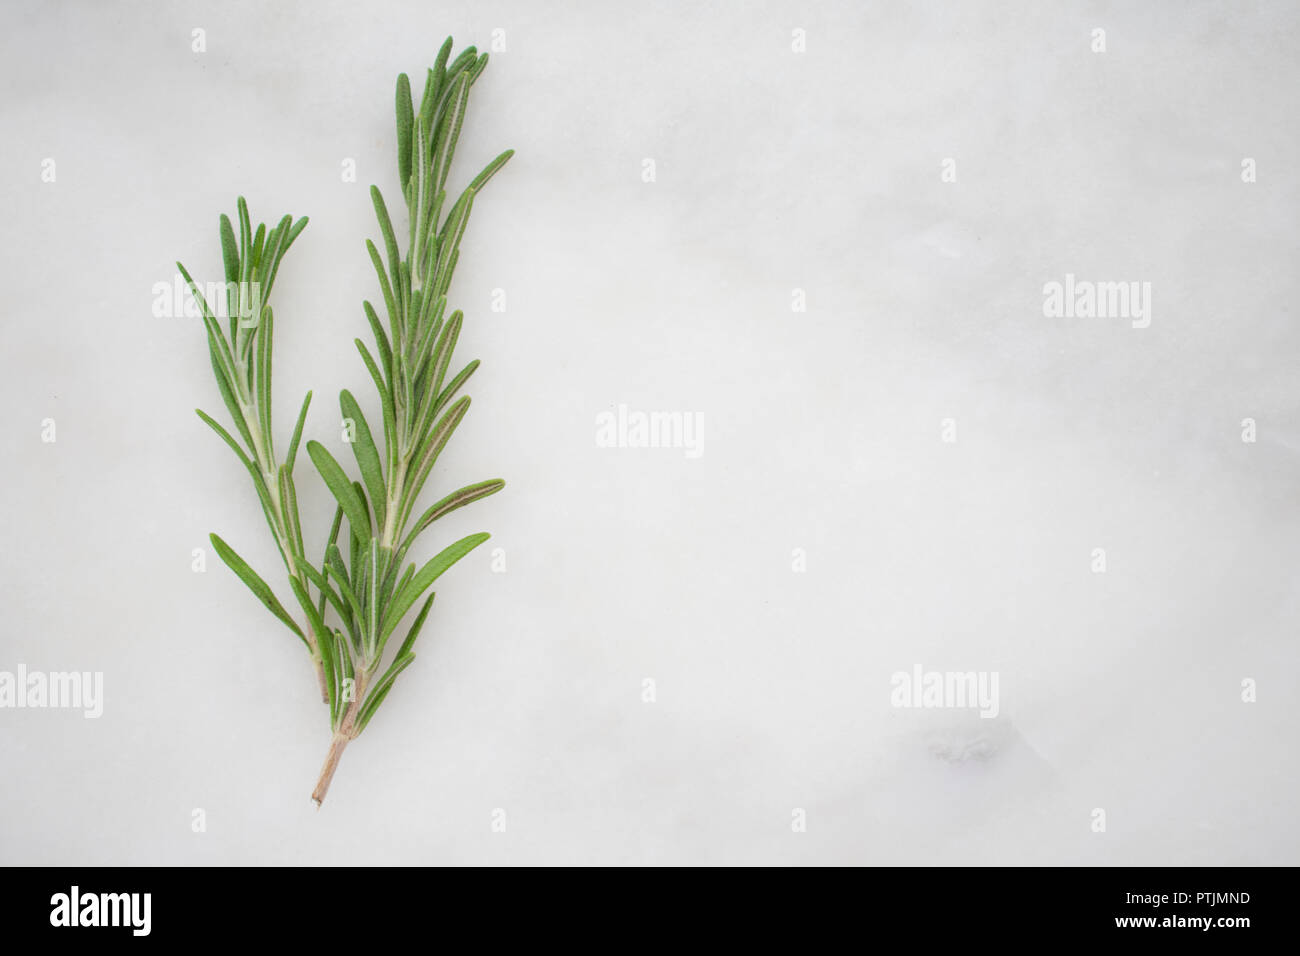 Rosemary Sprigs on a Marble Background - Stock Image